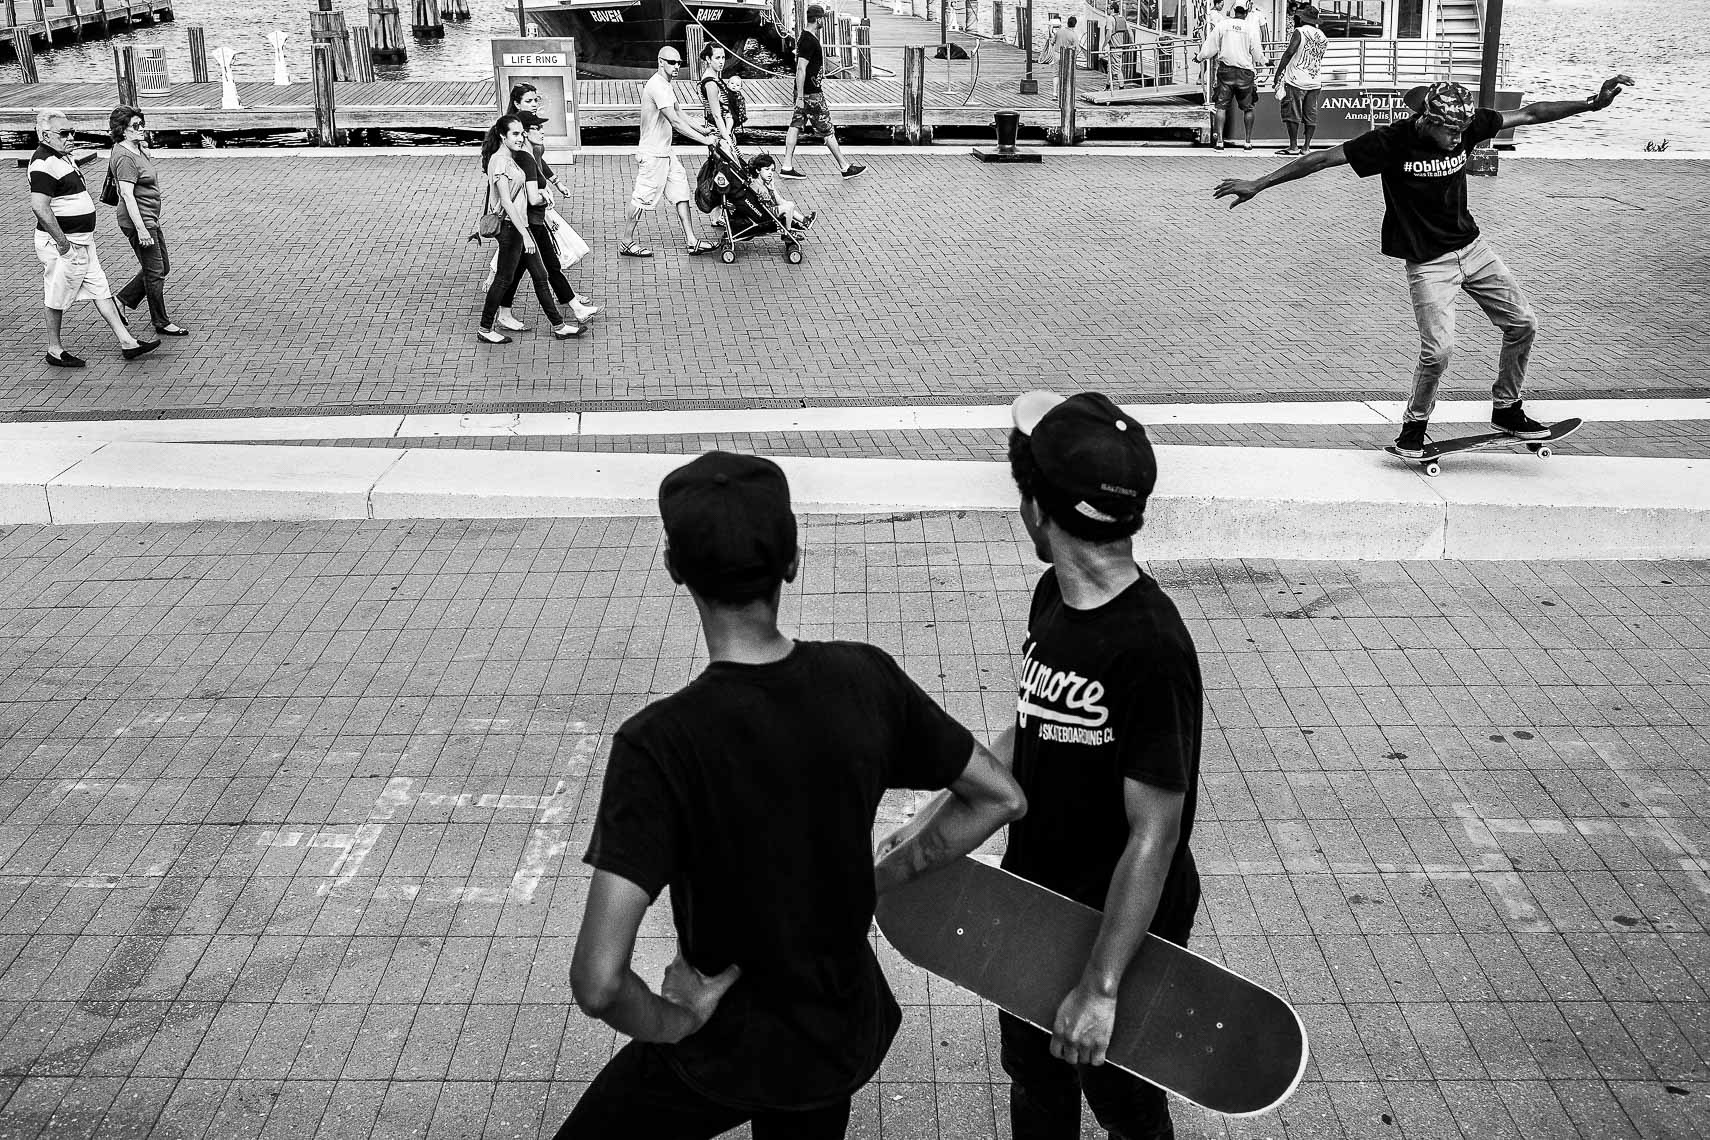 milksquad03_Milksquad was a group of African American Baltimore youth skateboarders sponsored by Milkcrate Athletics NYC who skateboard in Baltimore city youth culture documentary photography project